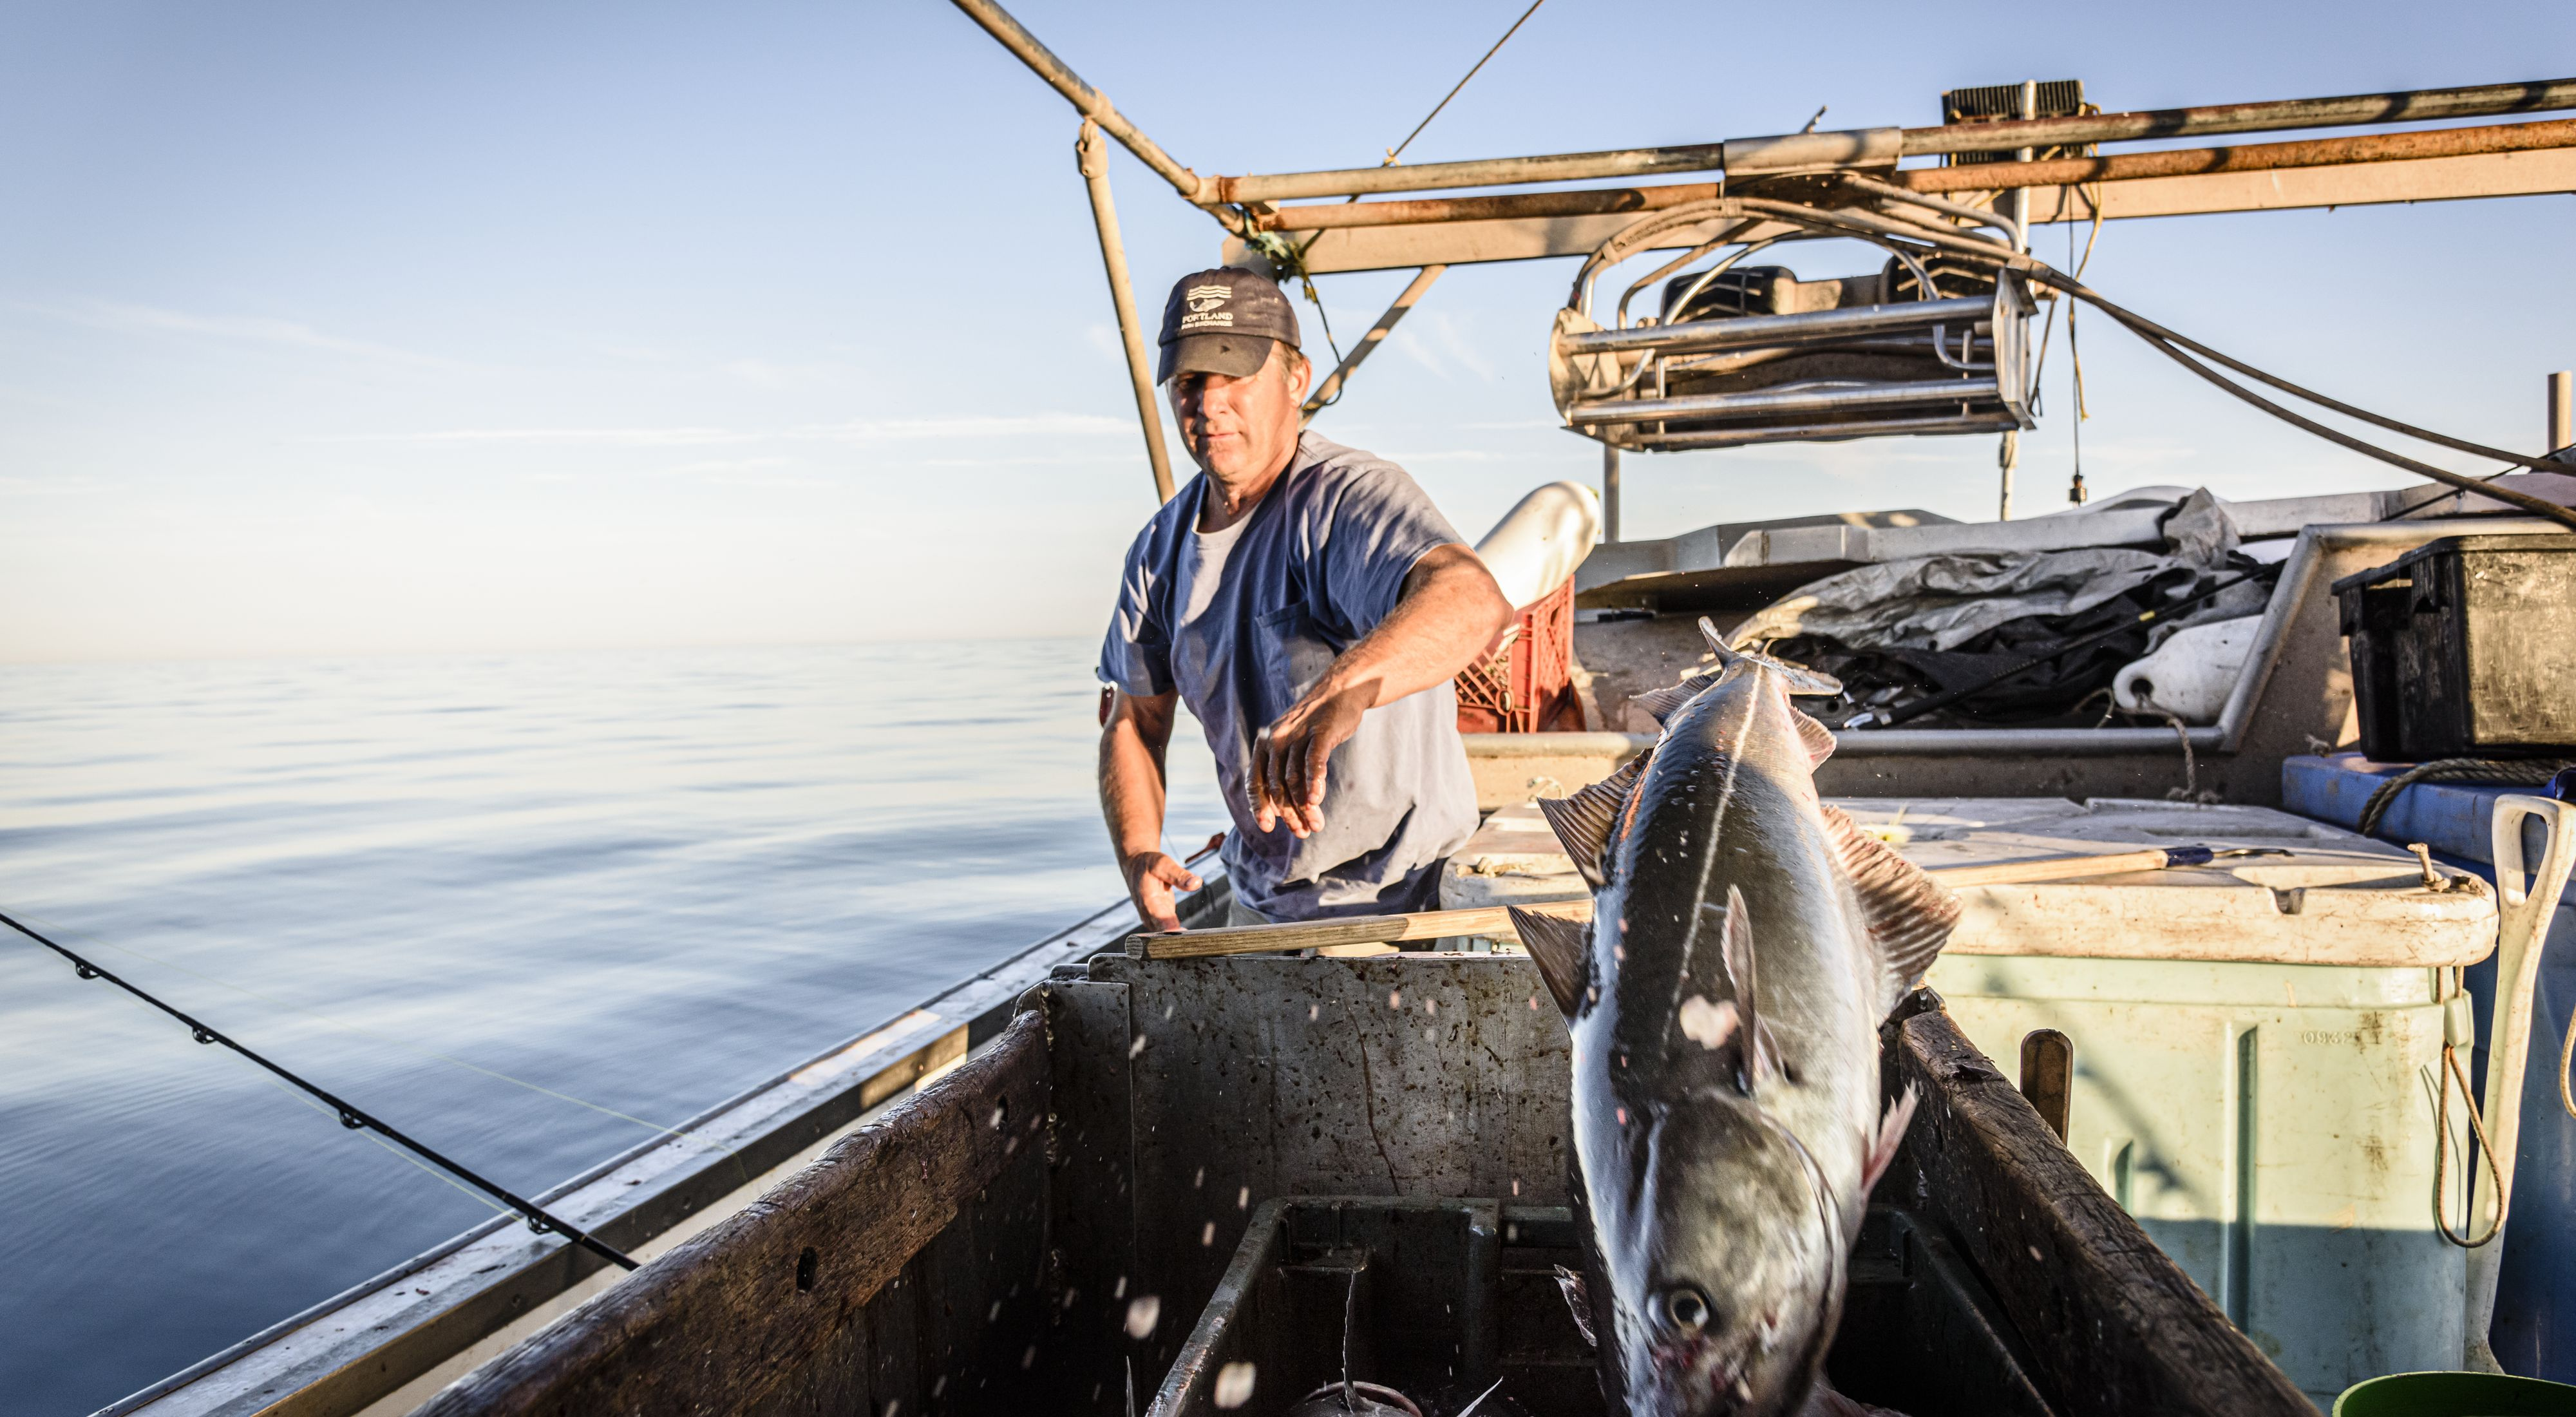 Bryan Bichrest throws a pollack into a fish bin on board his boat.